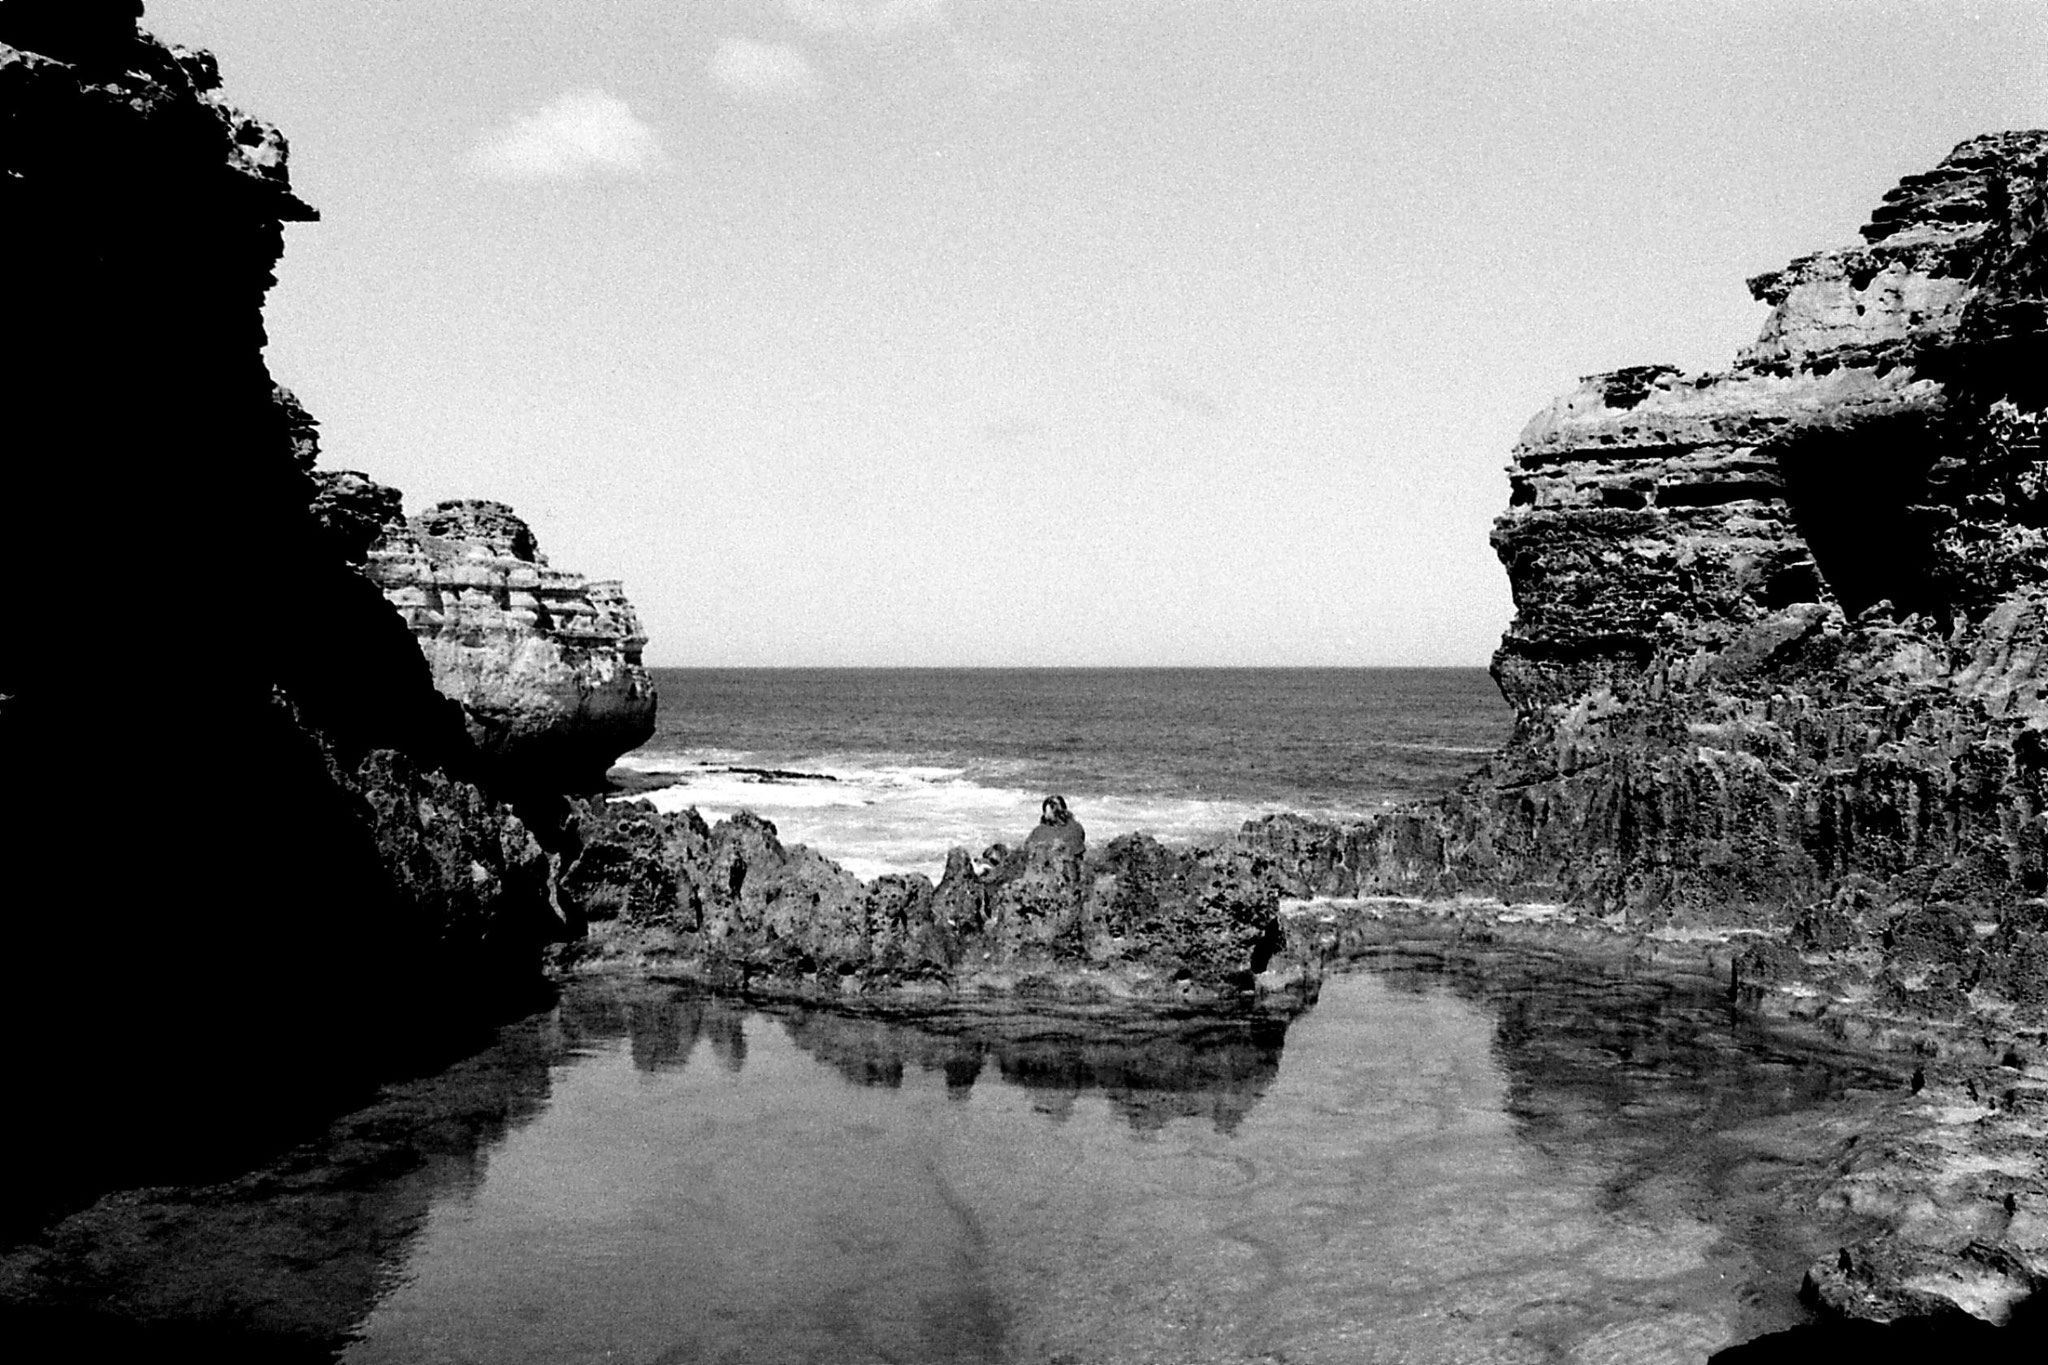 20/9/1990: 23: Port Campbell, the Grotto